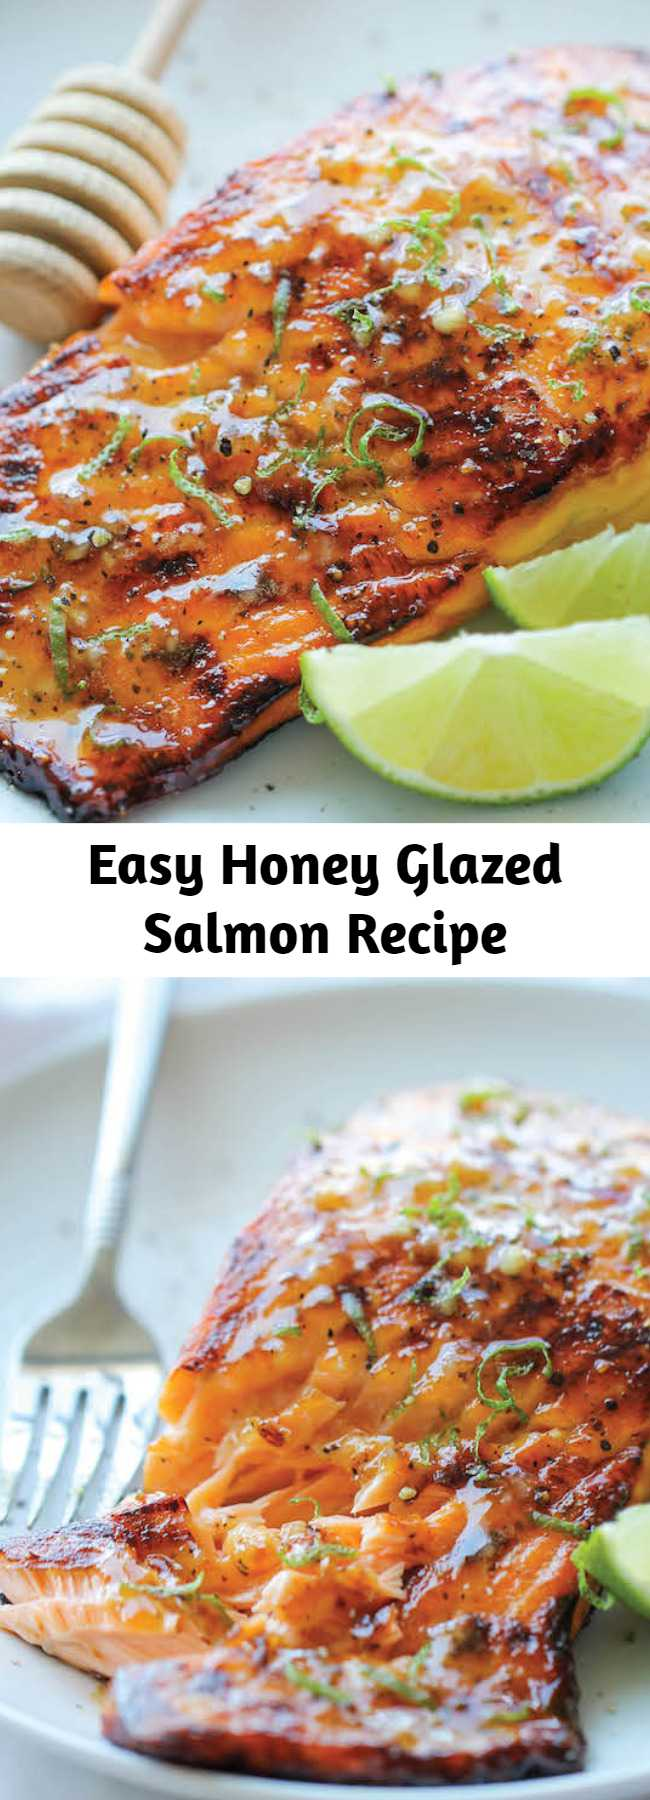 Easy Honey Glazed Salmon Recipe - The easiest, most flavorful salmon you will ever make. And that browned butter lime sauce is to die for!